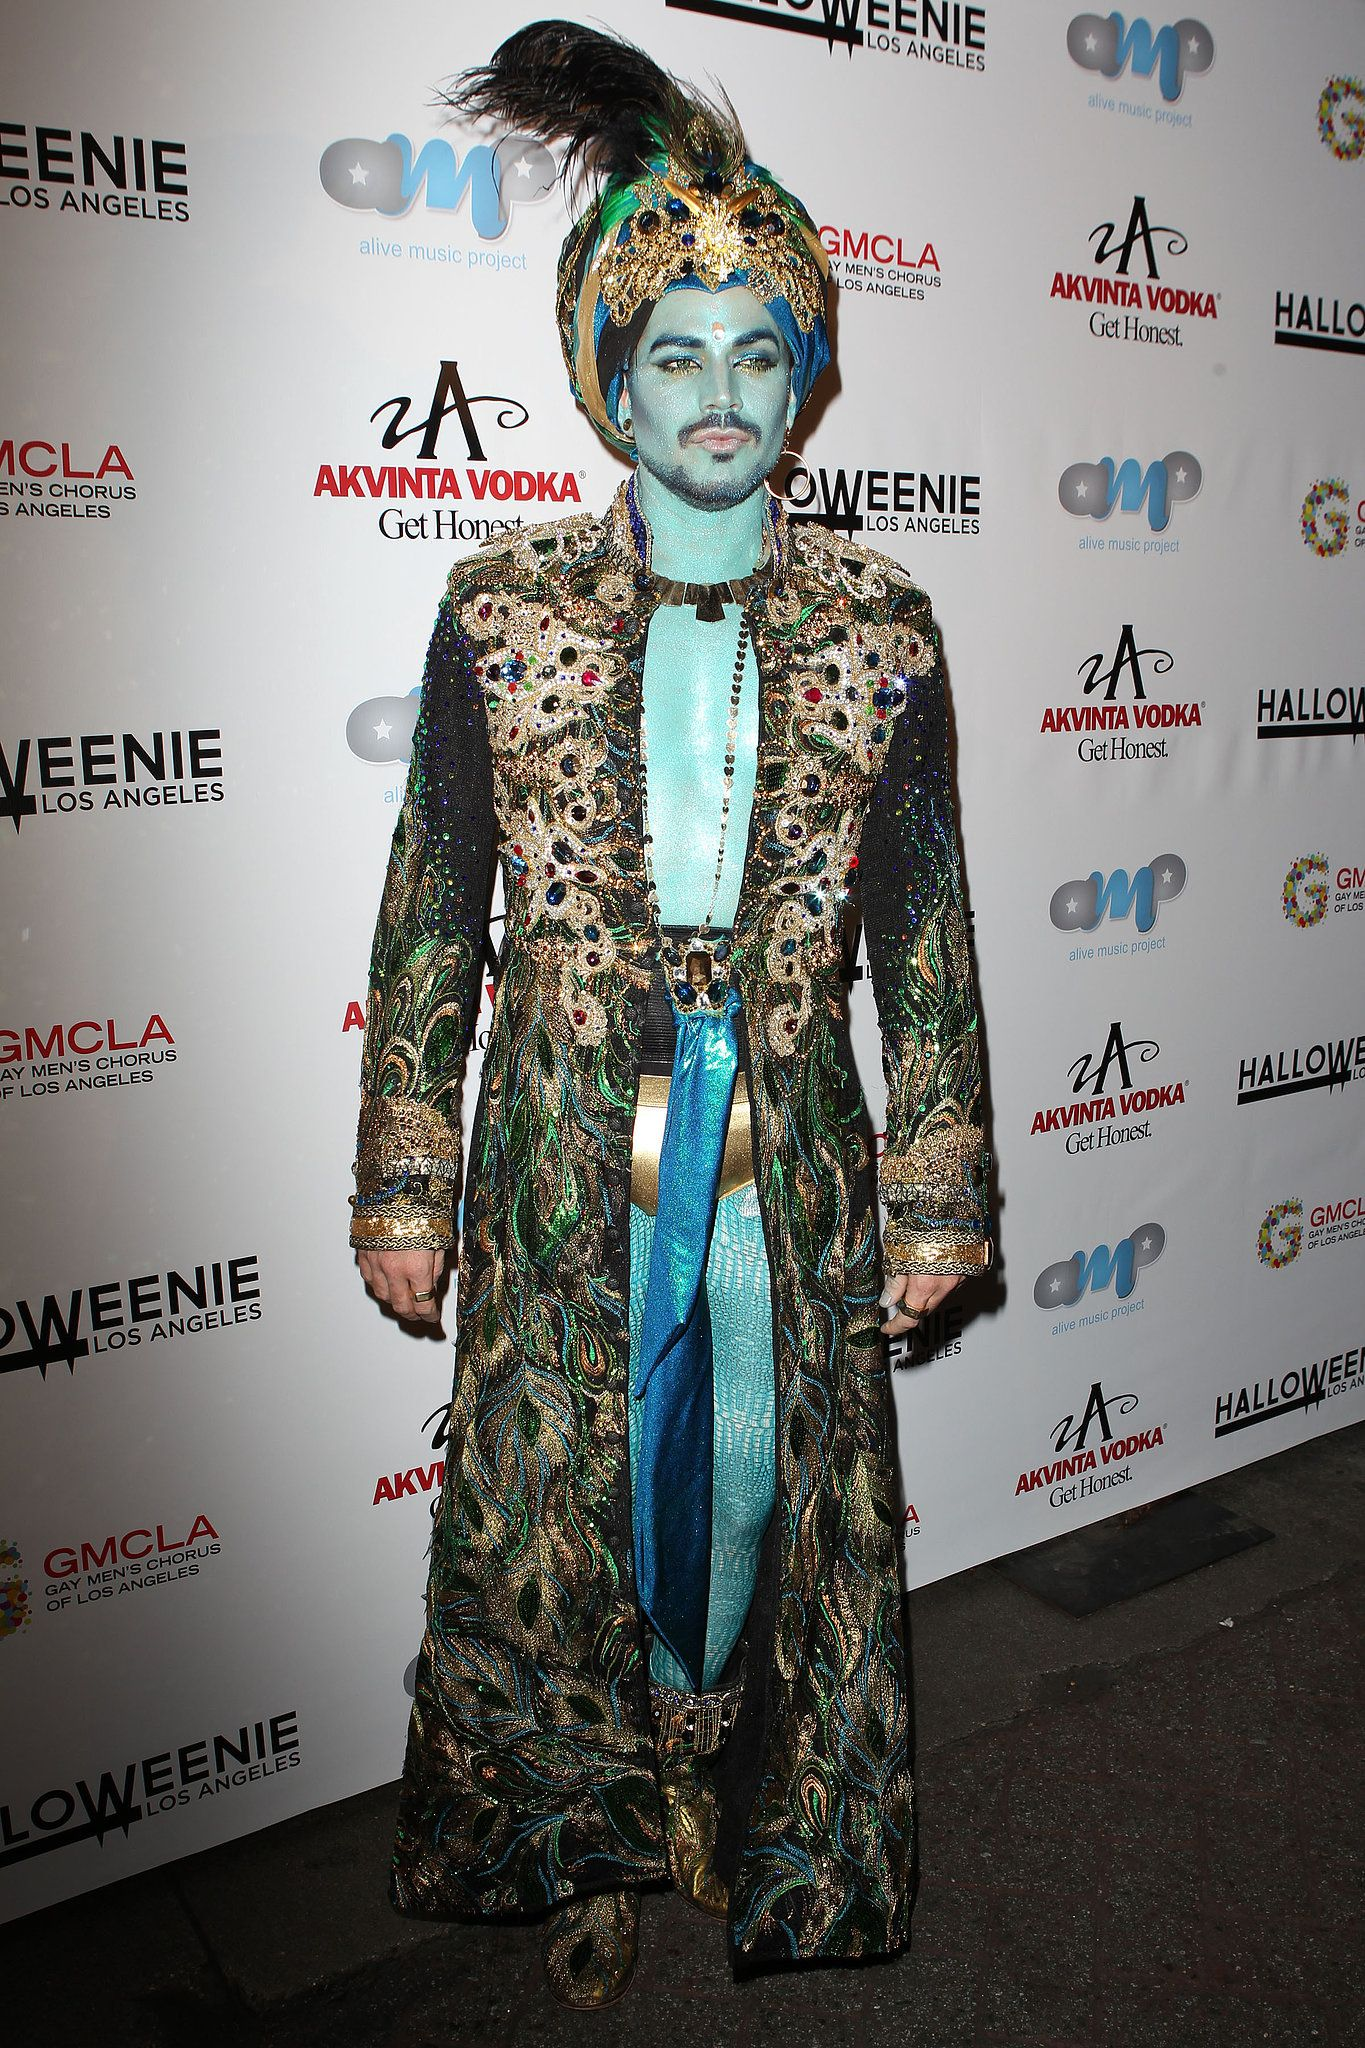 Adam Lambert dressed as a genie for an event benefitting the Gay Men's Chorus of LA.